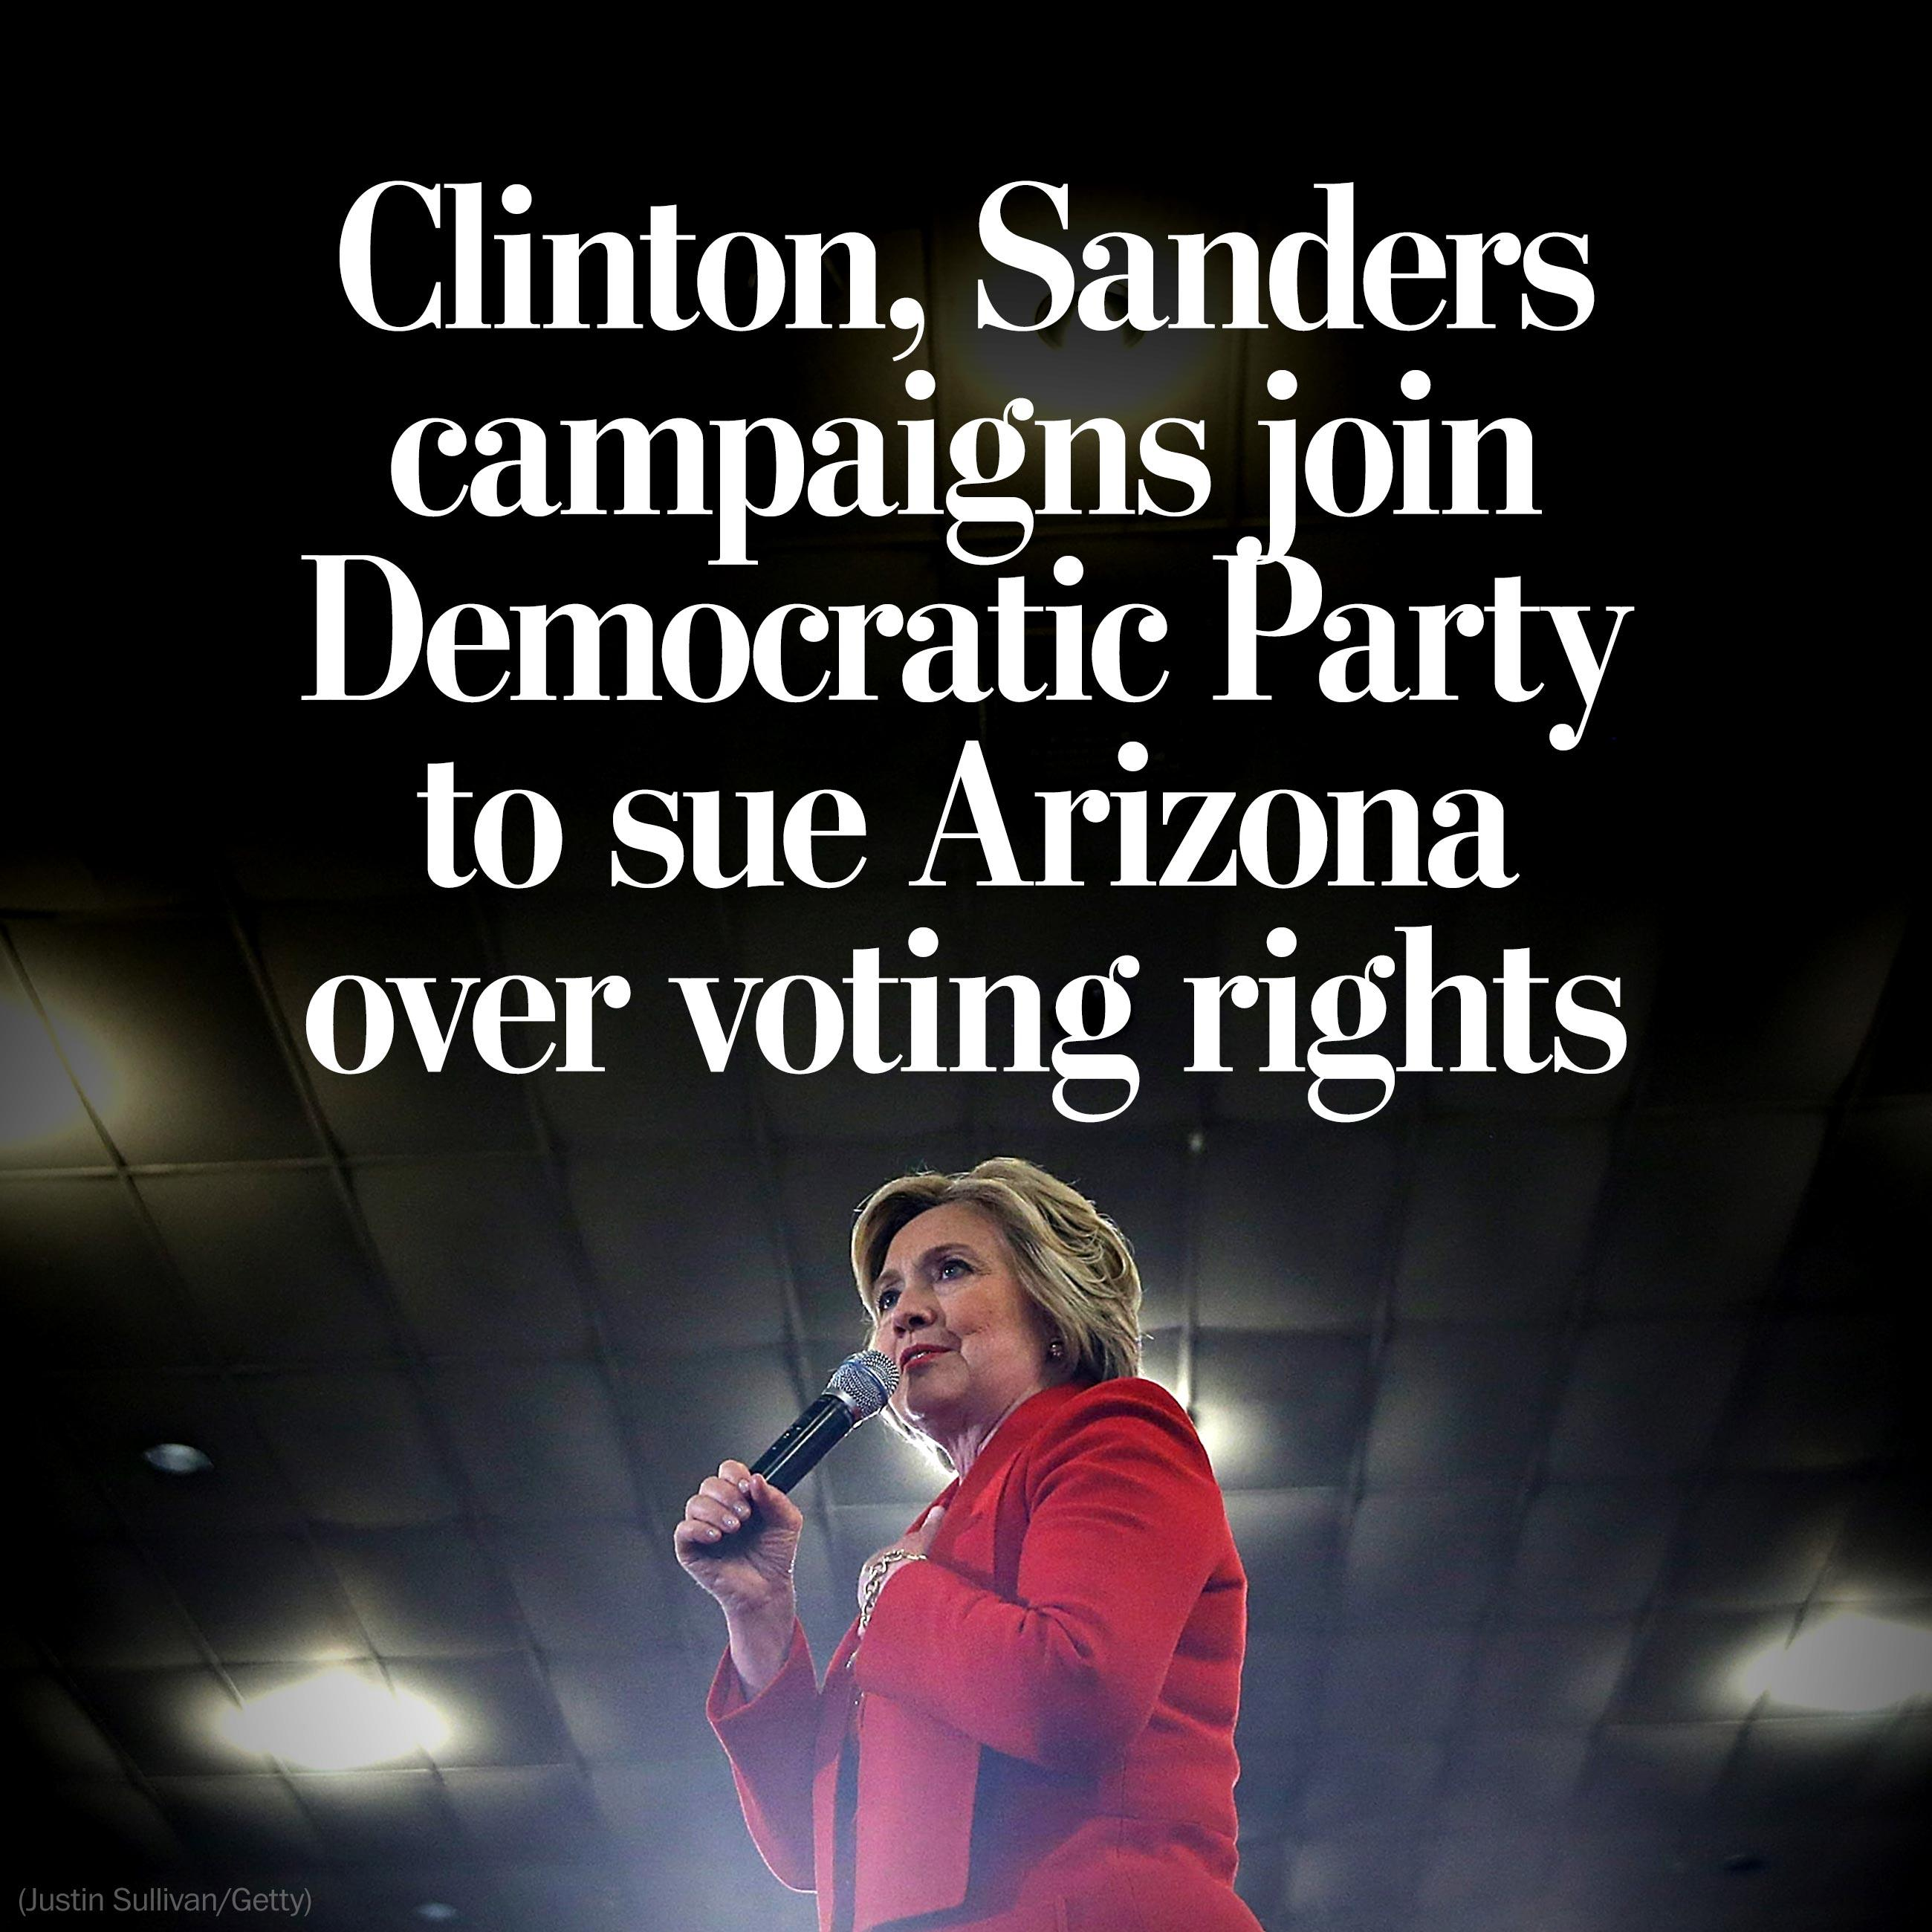 Democratic Party and Clinton campaign to sue Arizona over voting rights